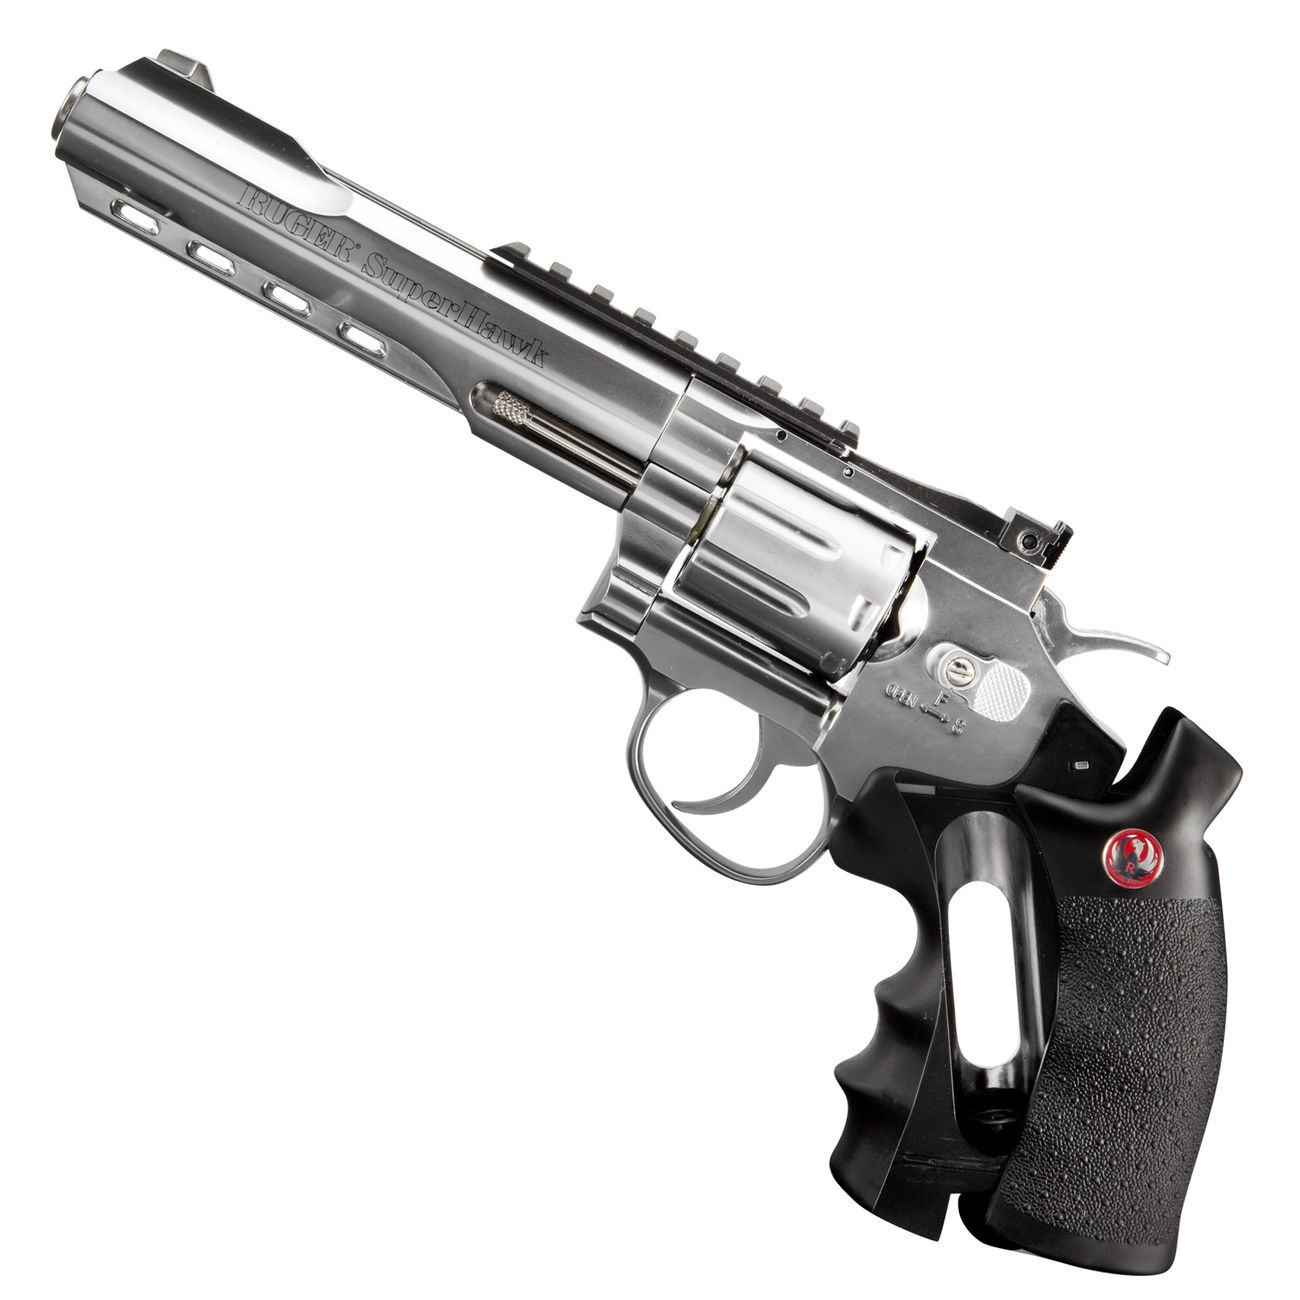 Ruger Super Hawk 6 Zoll 6mm BB CO2 Revolver chrom 4